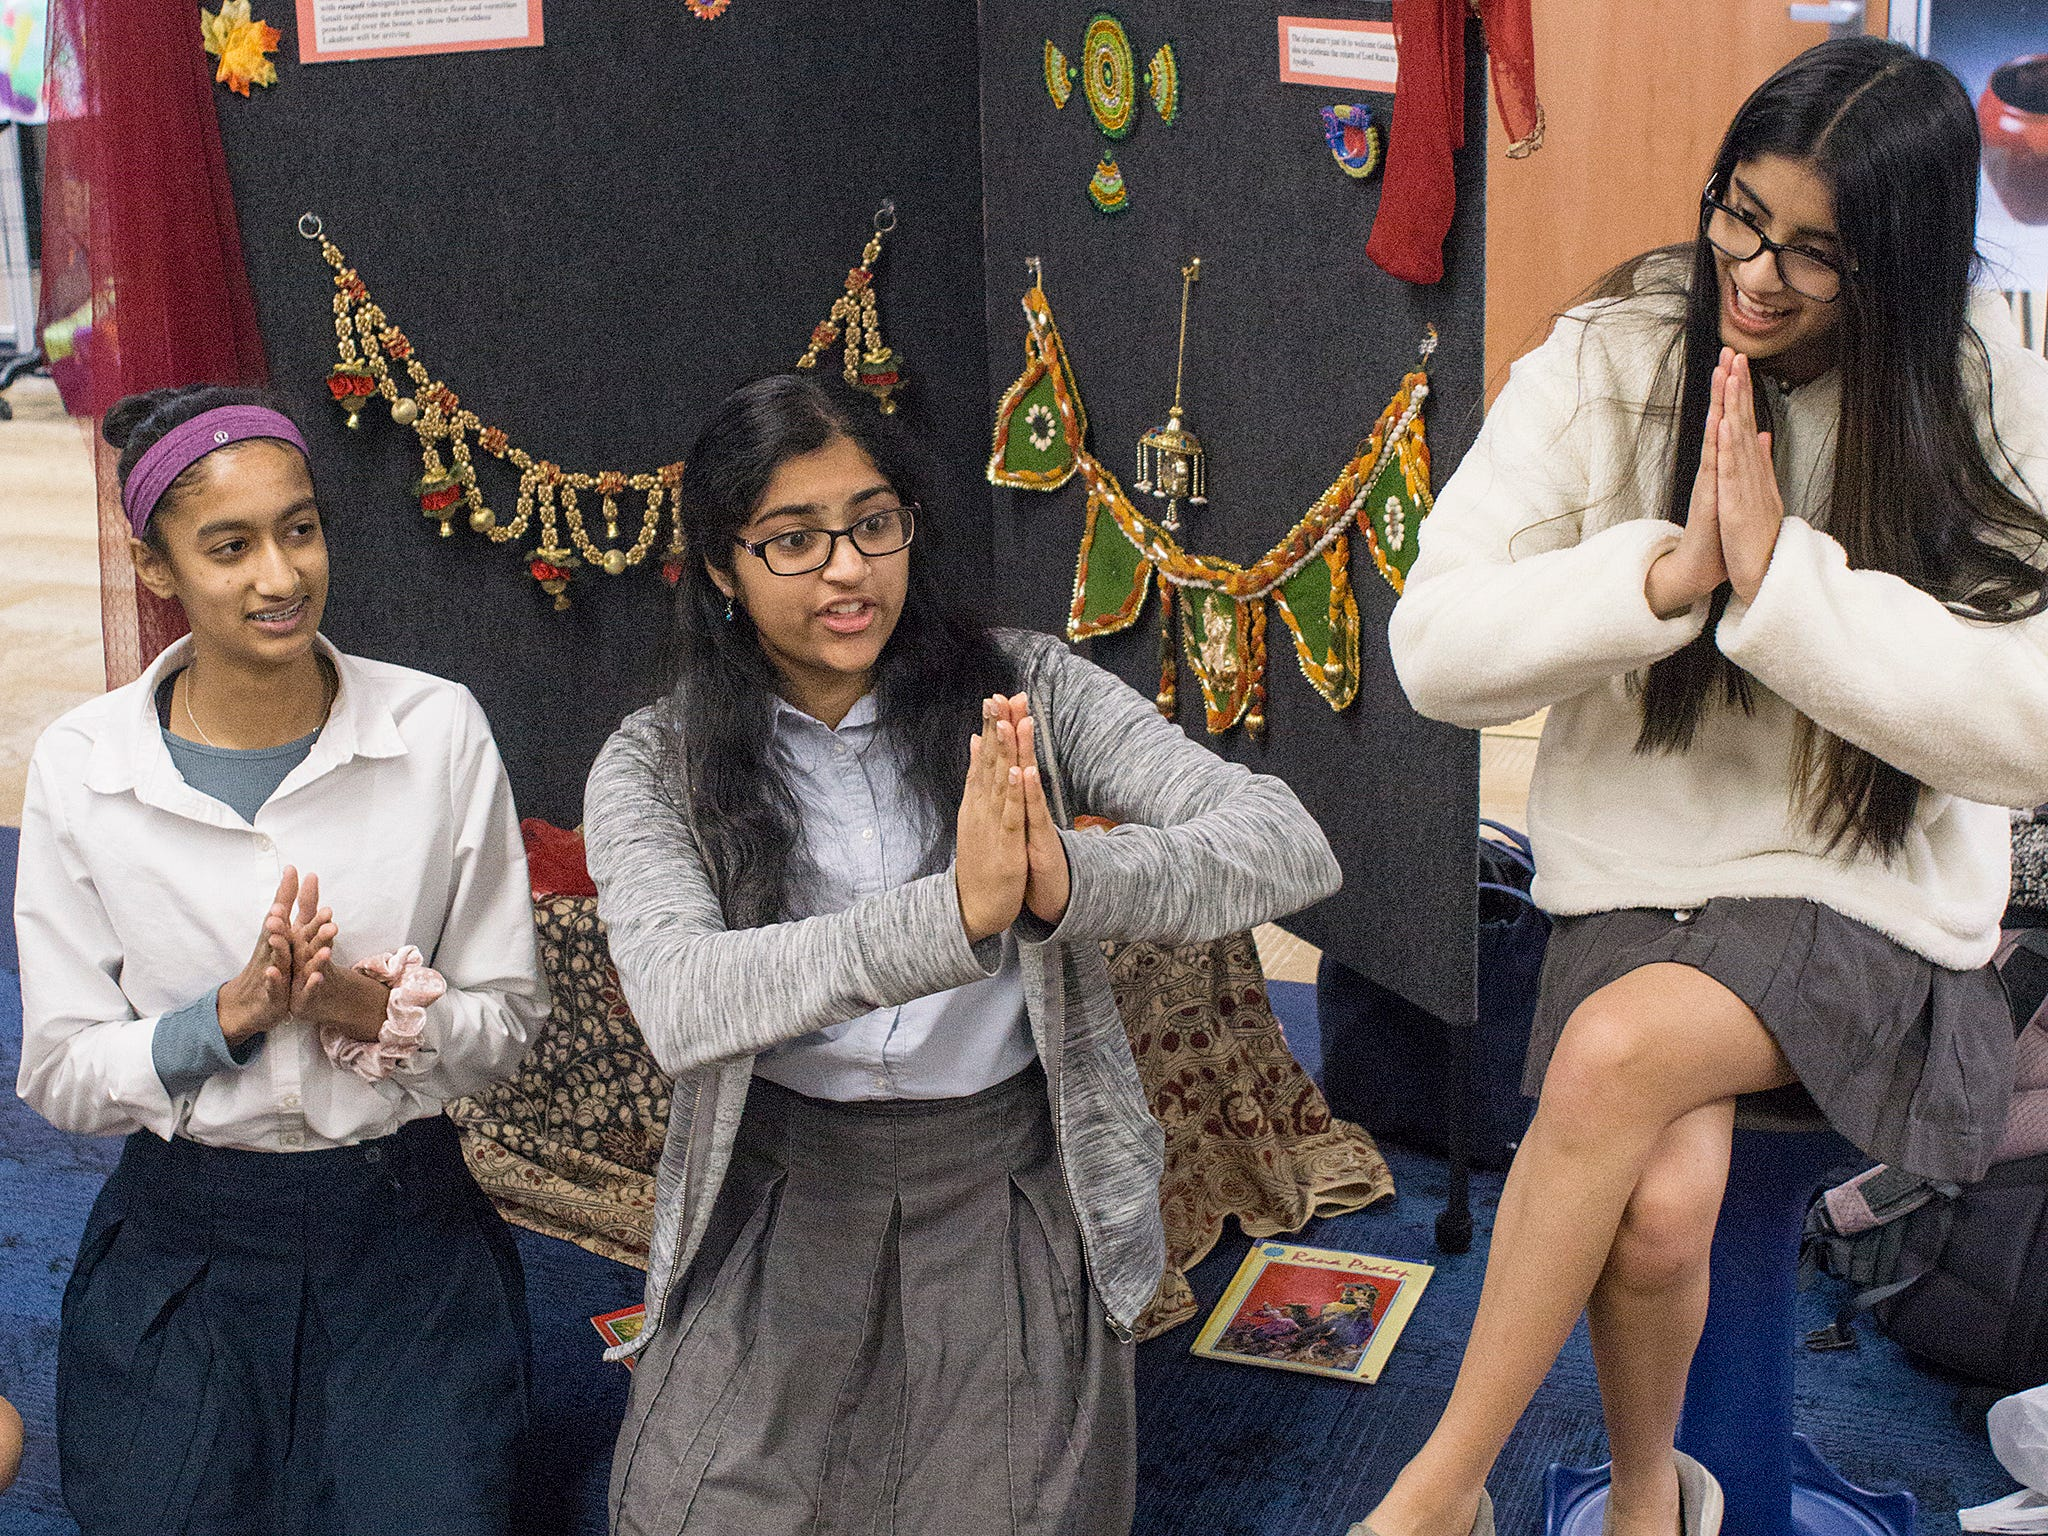 """Shreya Chalasani, Sahithi Oruganti, and Tara Nayak teach the second graders the traditional greeting associated with the Hindu religion, """"Namaste"""", which means """"I bow to you""""."""